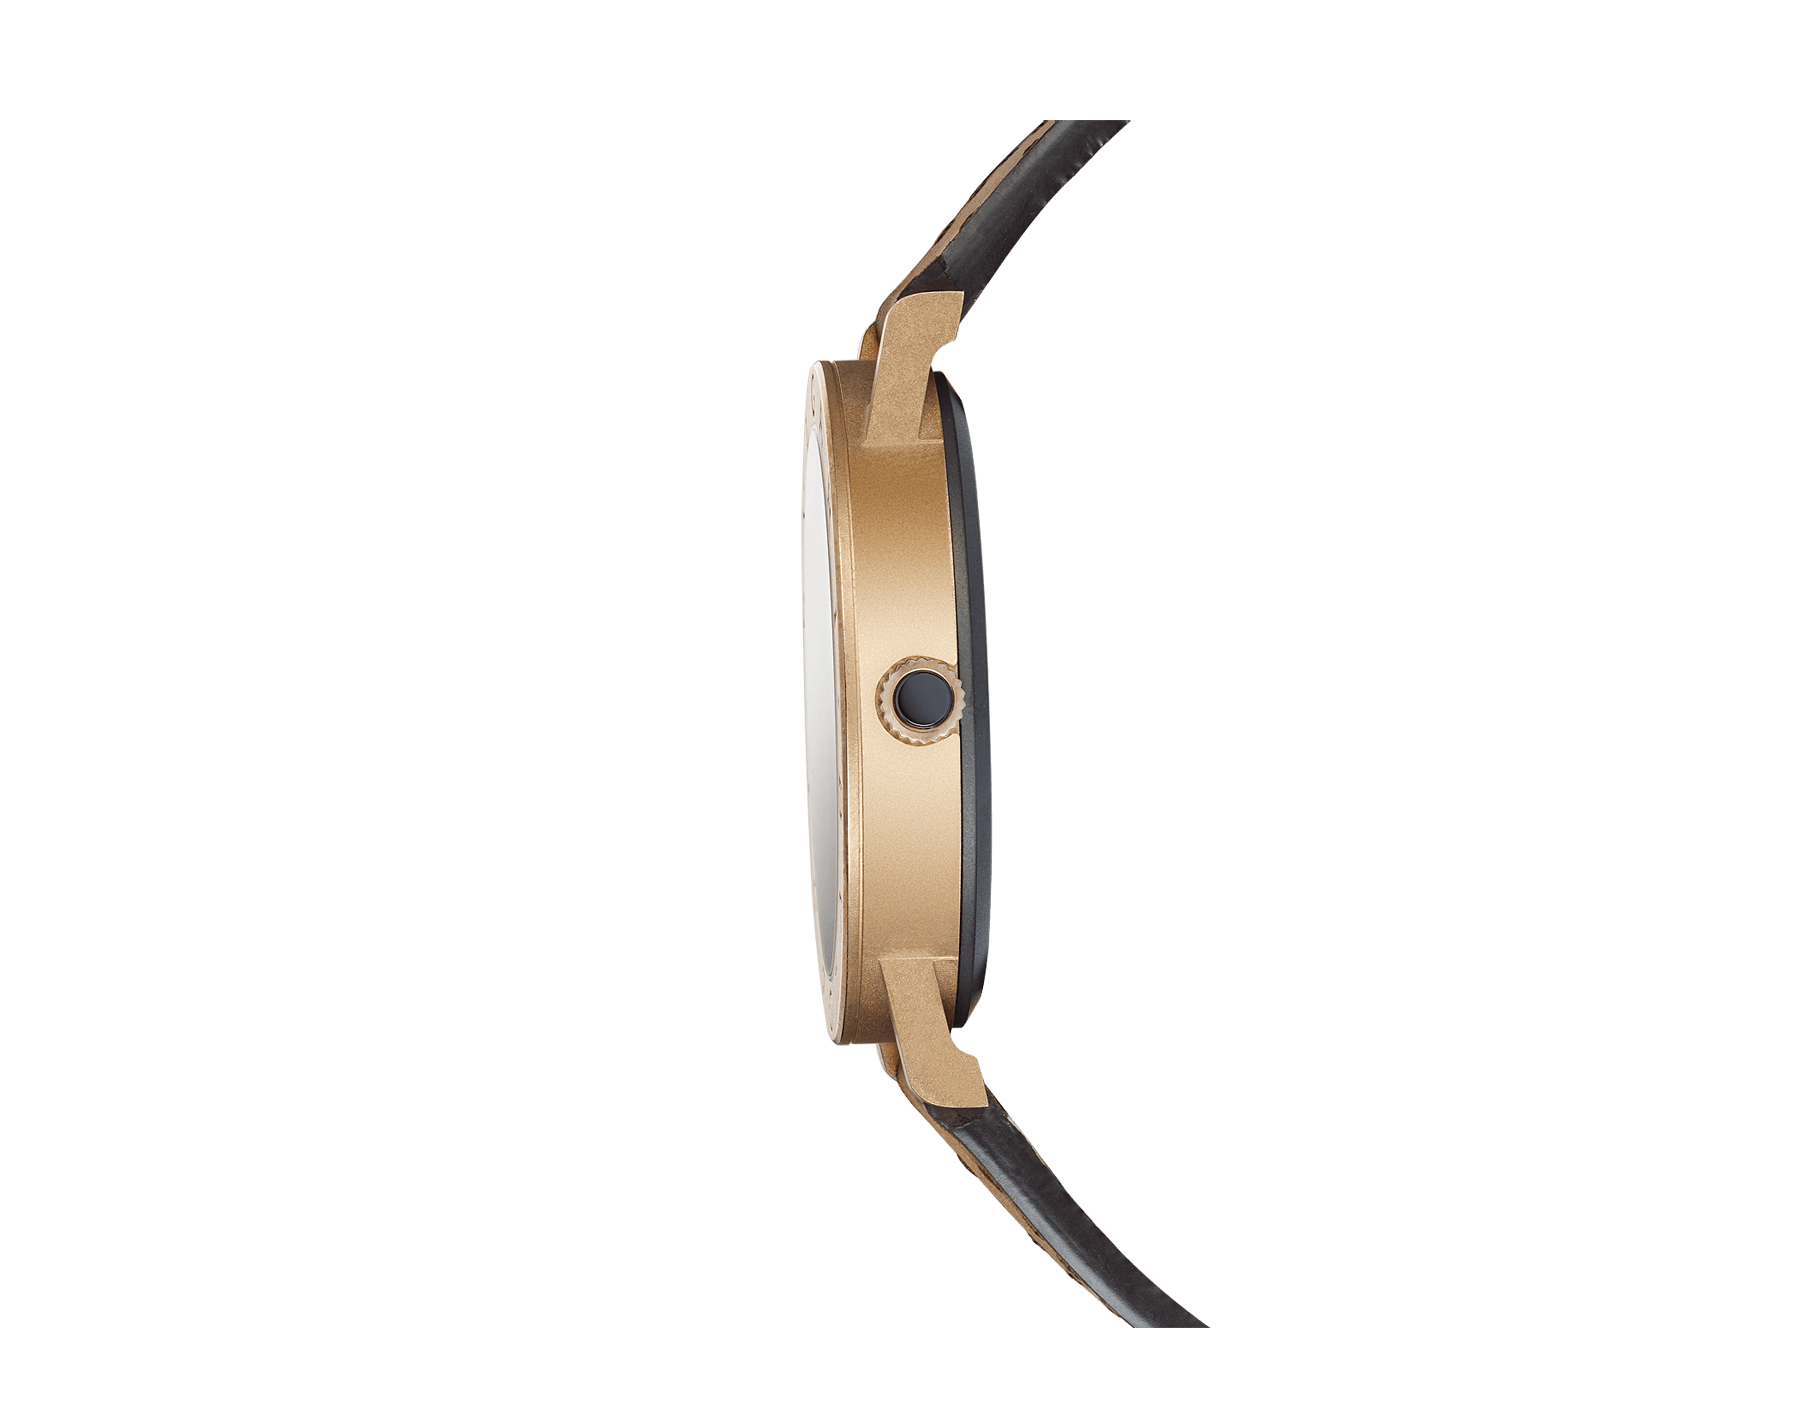 BVLGARI BVLGARI Solotempo watch with mechanical manufacture movement, automatic winding and date, bronze case, bronze bezel engraved with double logo, black dial and brown leather bracelet 102977 image 2